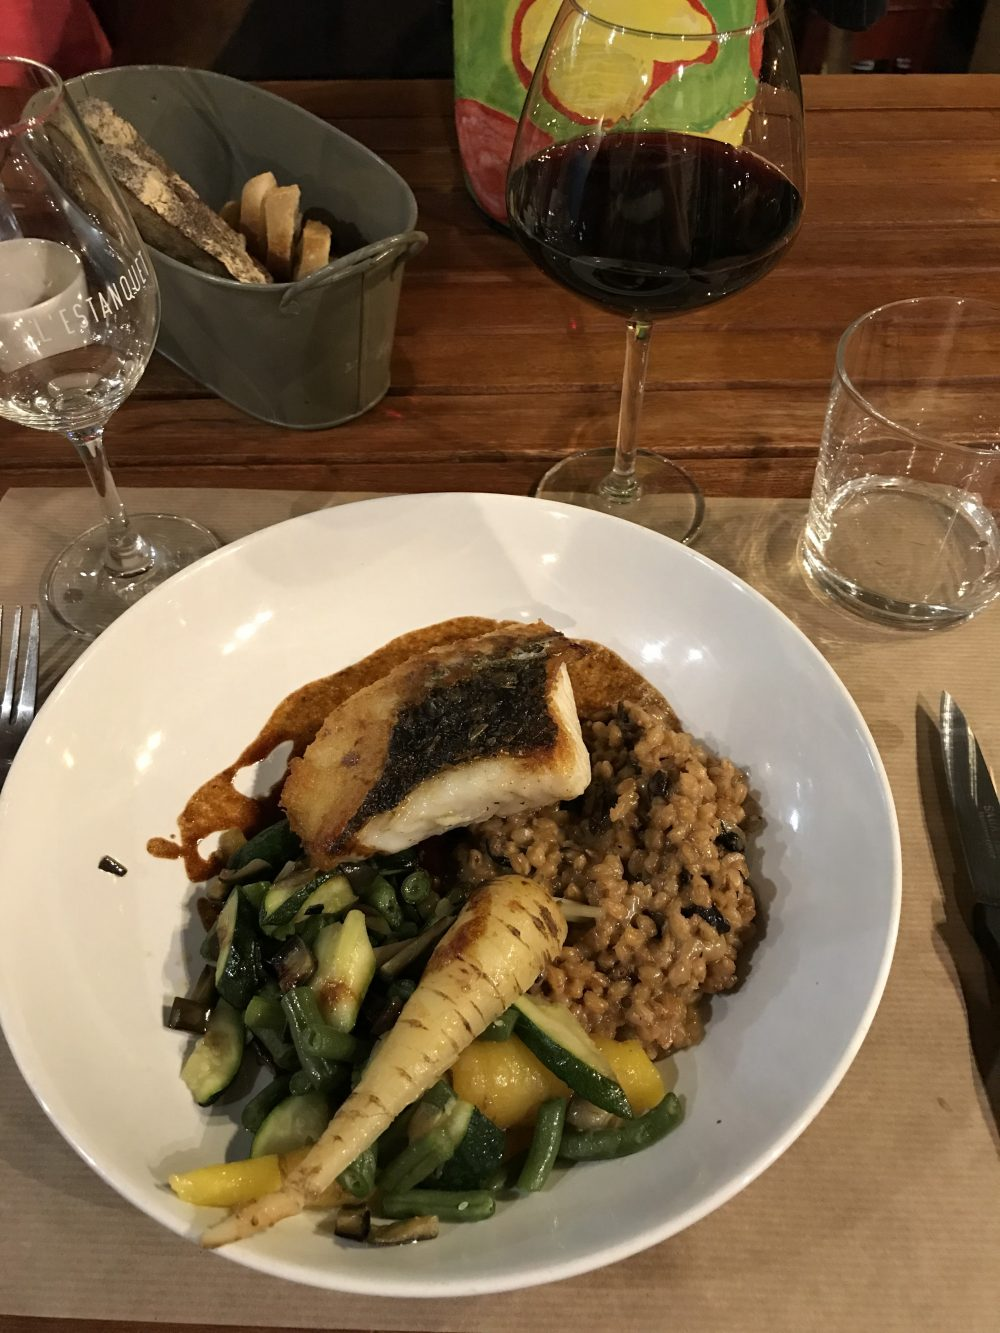 salmon, rice, and vegetables on a plate next to a glass of red wine